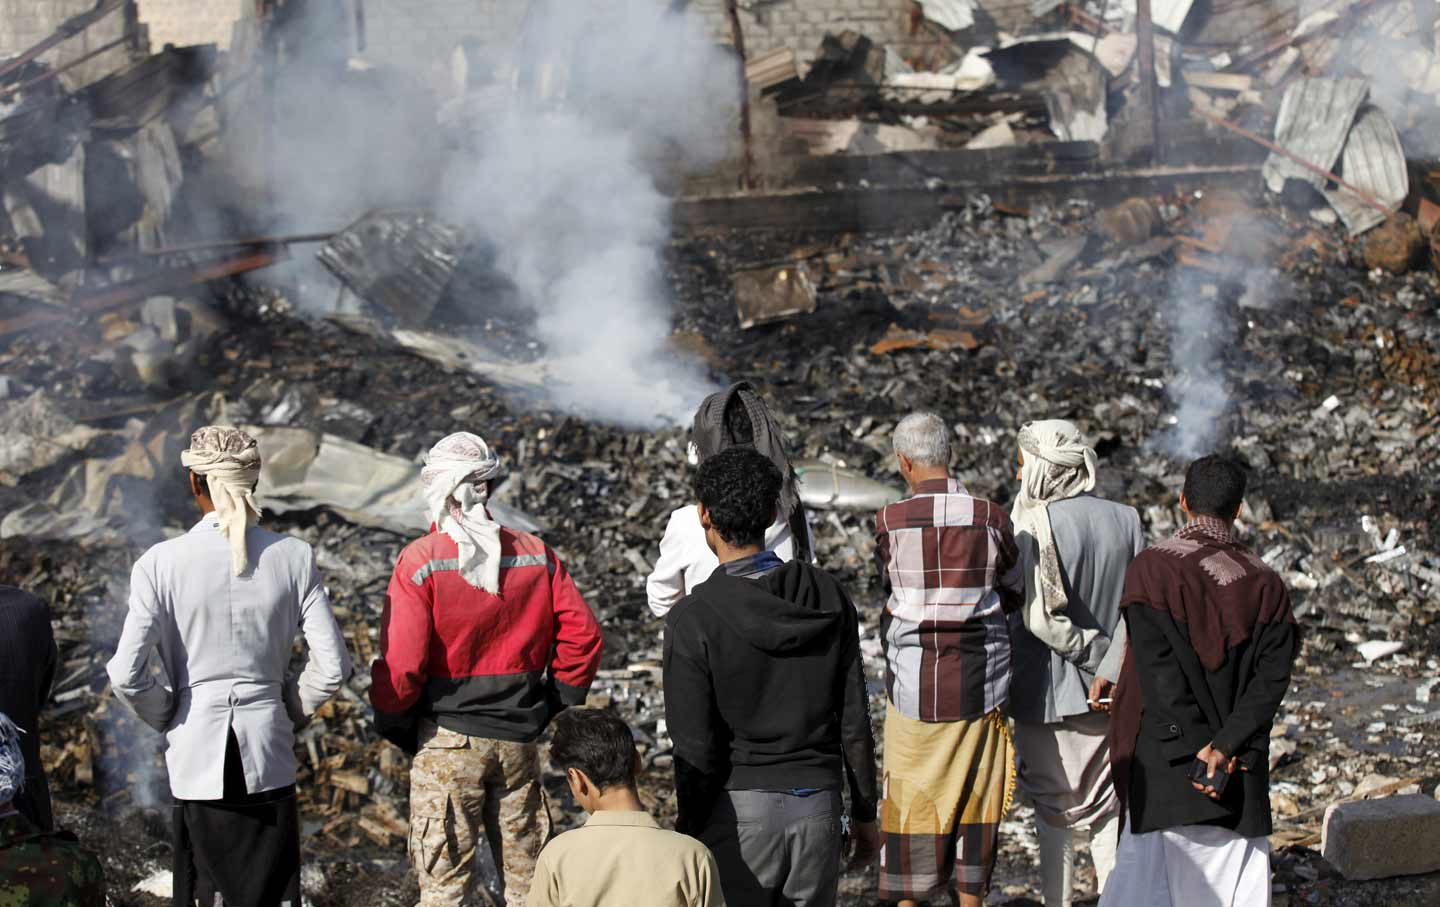 Civilans look at rubble from Saudi airstrike